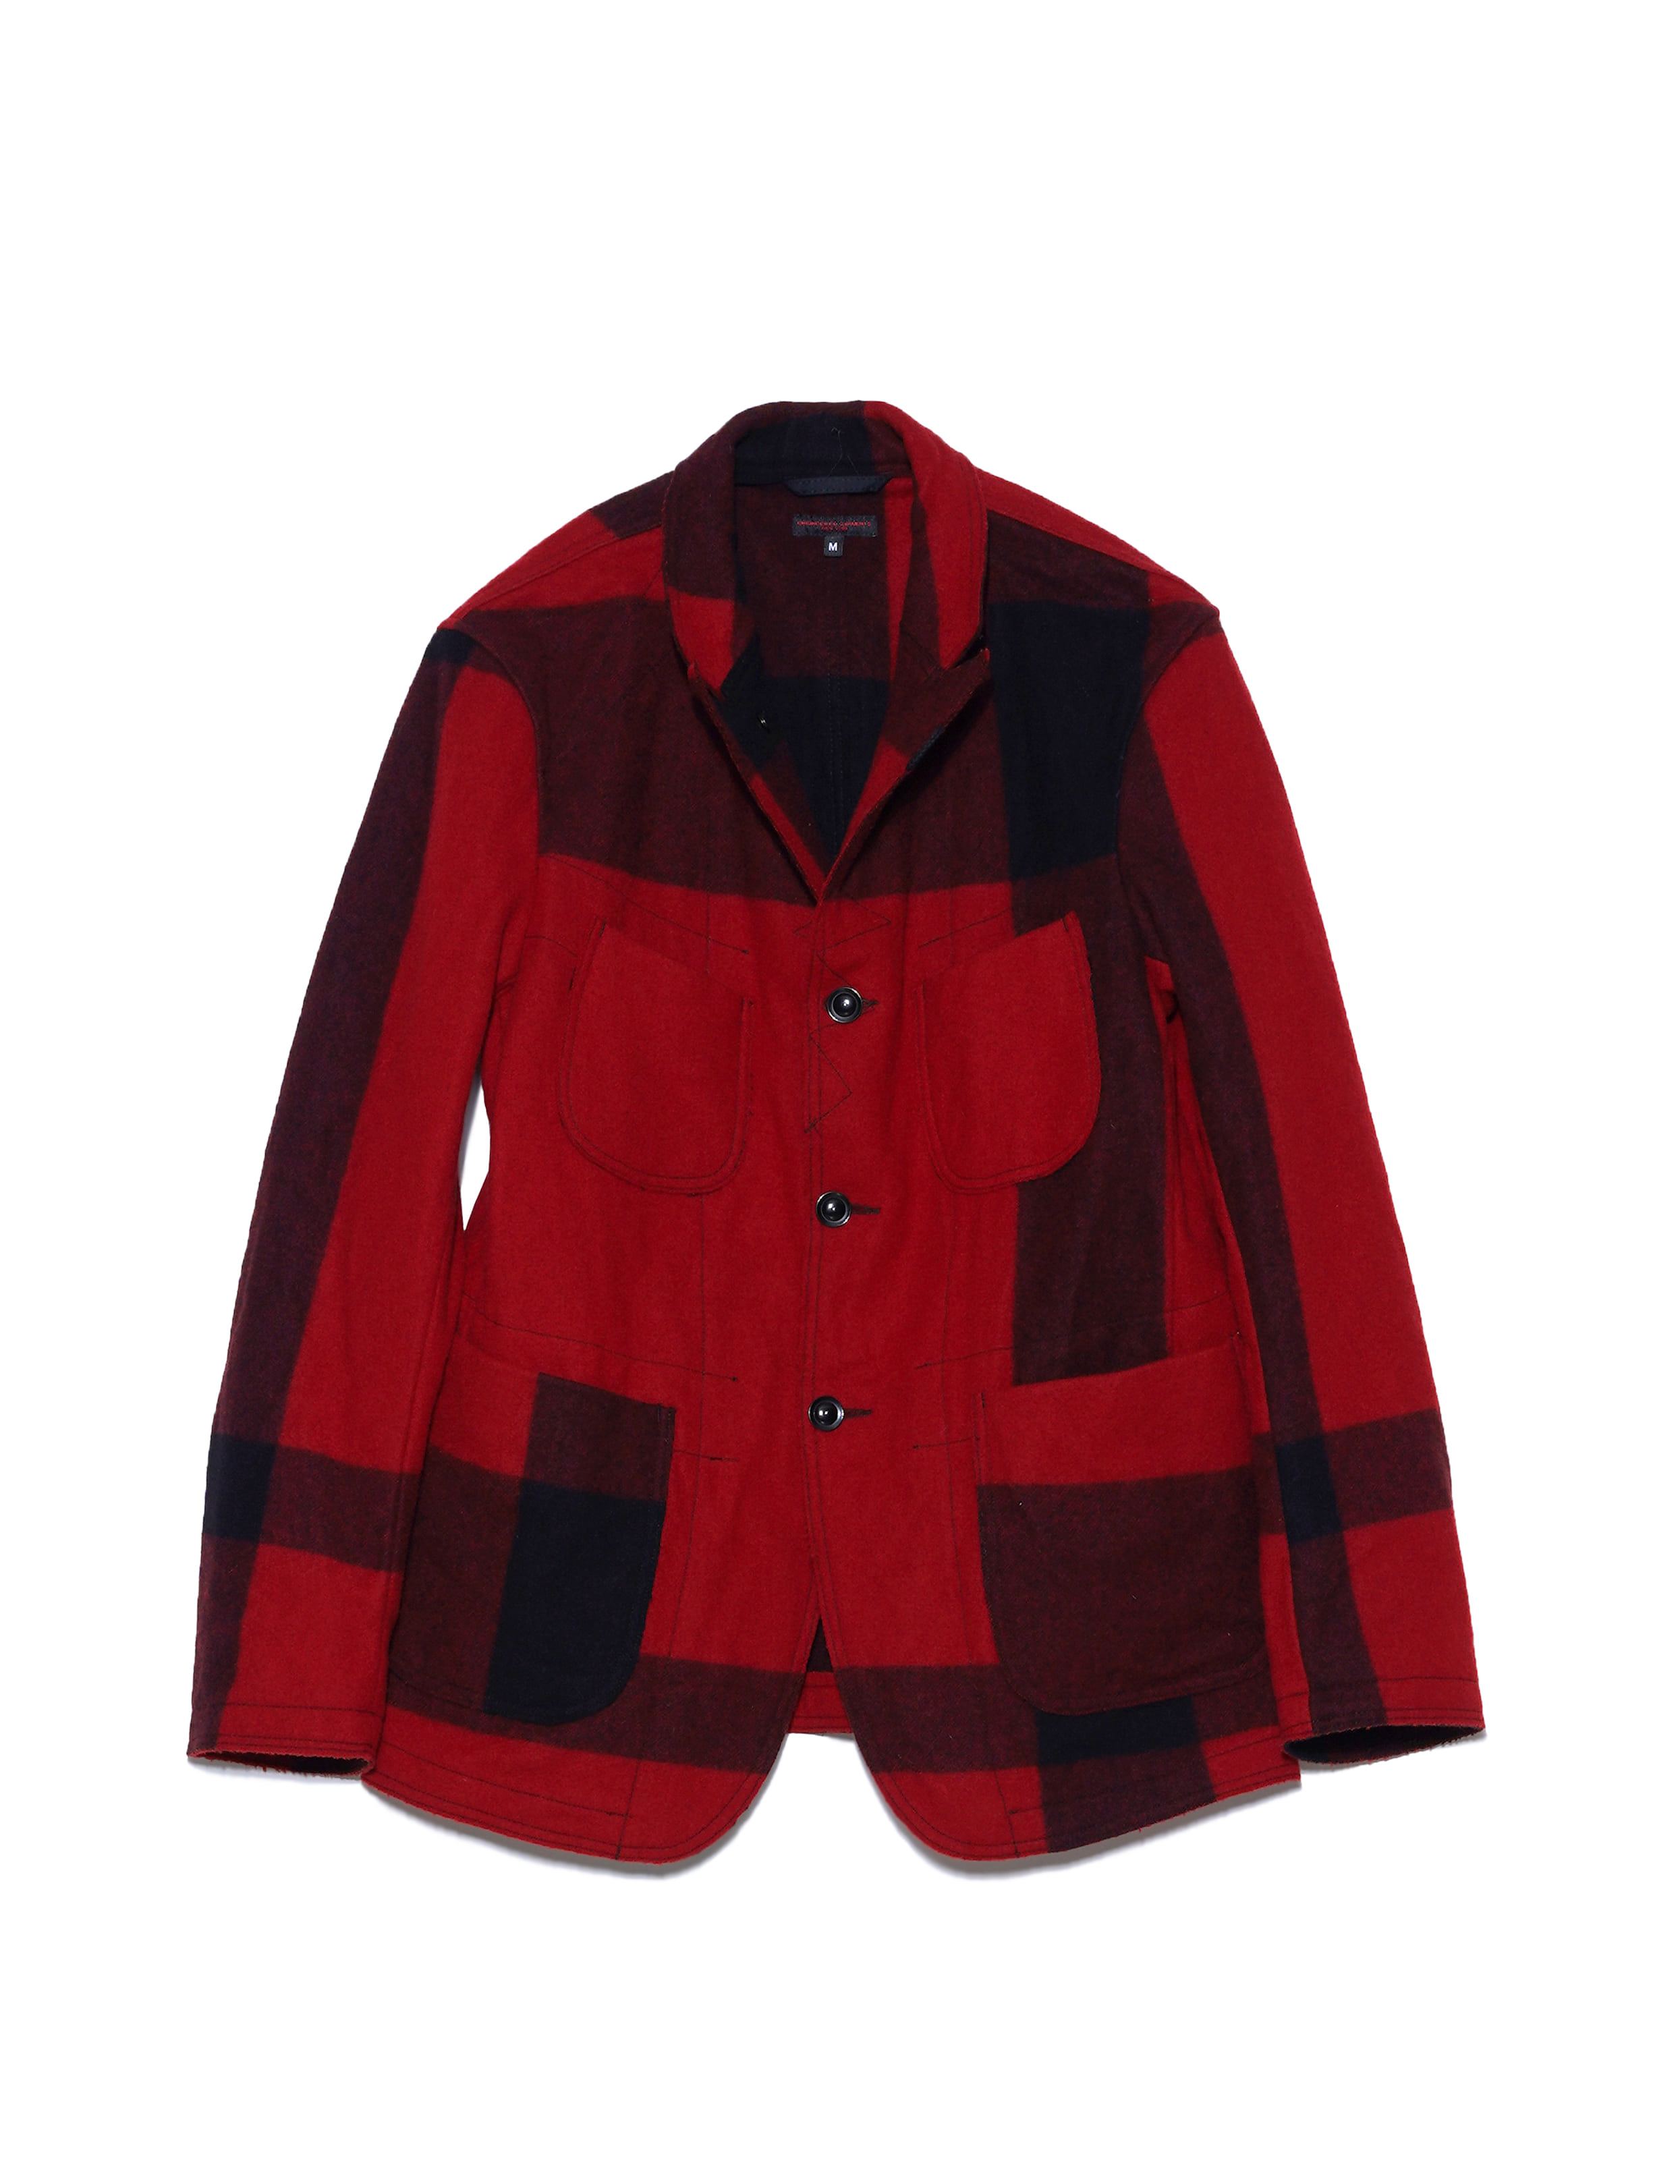 RE BEDFORD JACKET (RED)